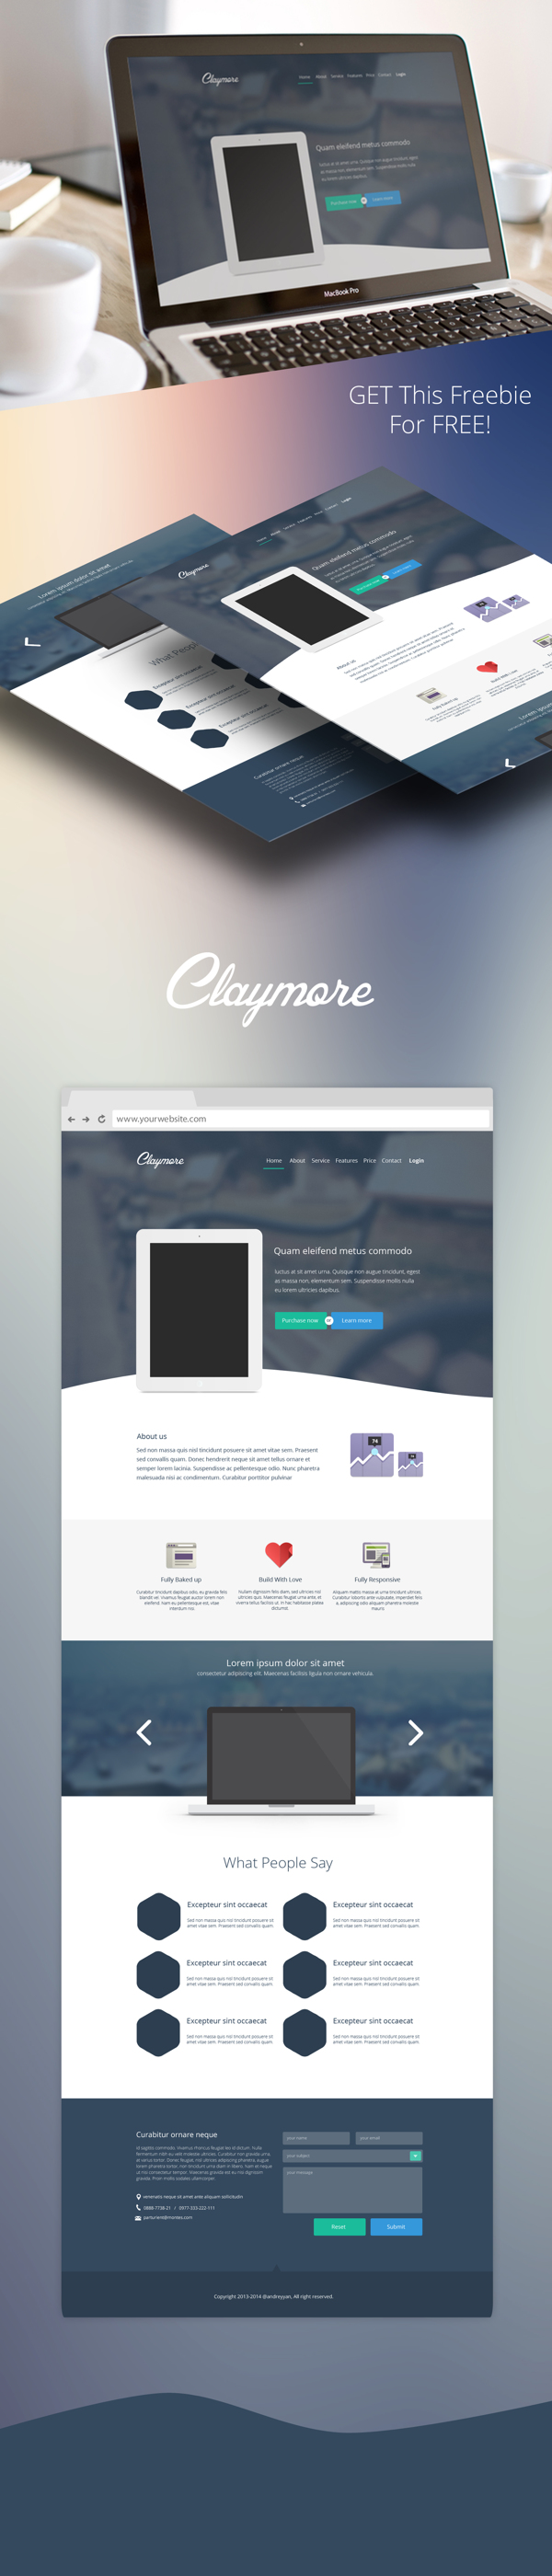 Claymore - App Landing Page